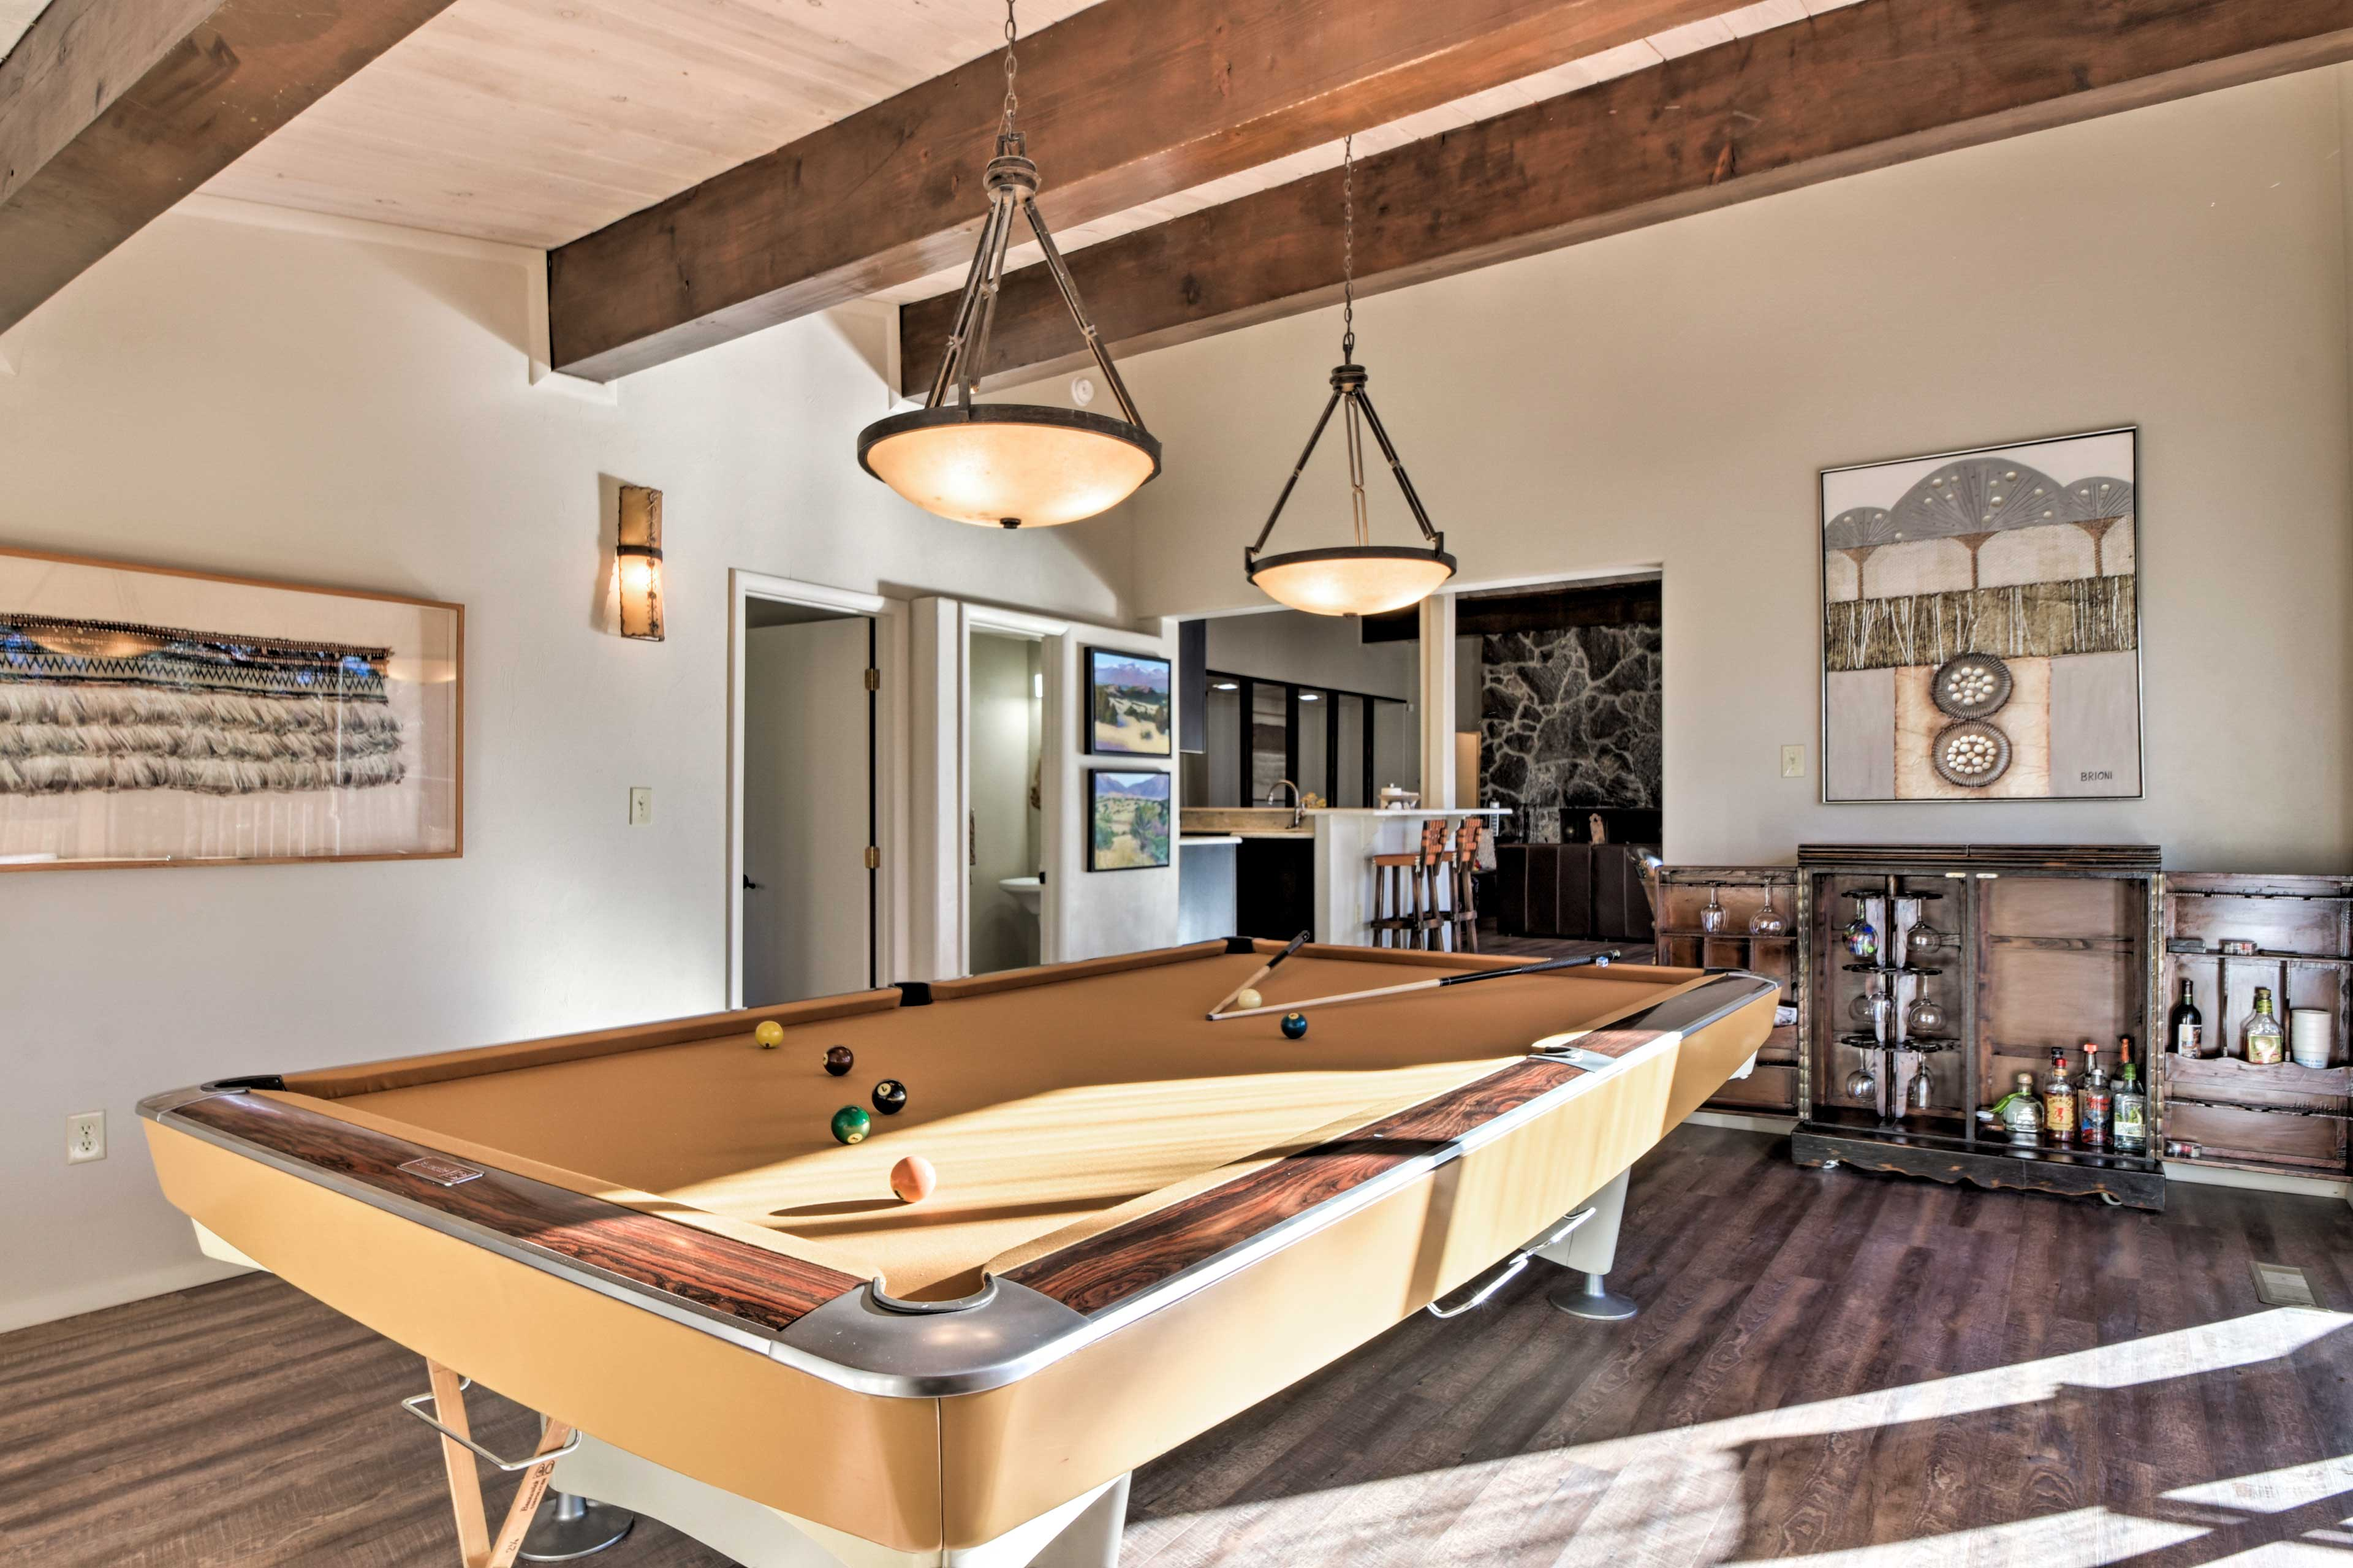 Just steps away, a Snooker table and bar area outfit this sun-soaked room.